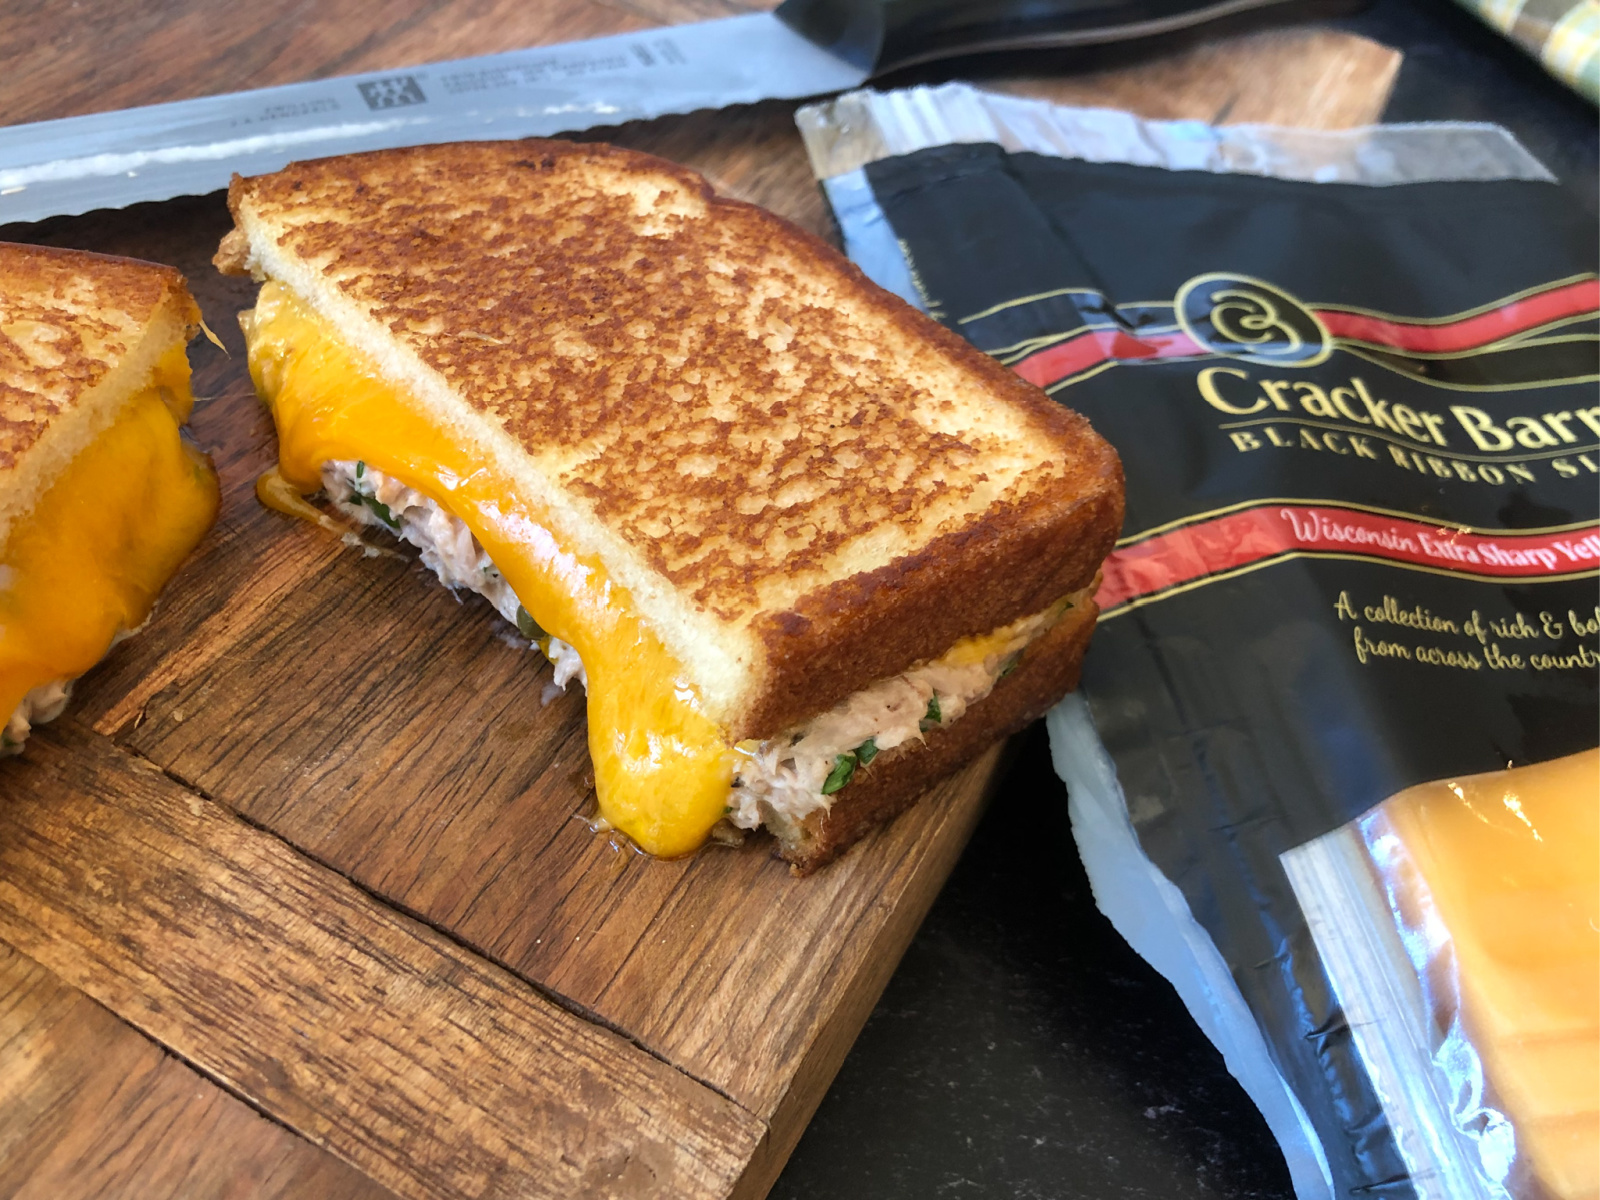 Super Deal On Delicious Cracker Barrel Cheese - On Sale 2/$6 This Week At Publix on I Heart Publix